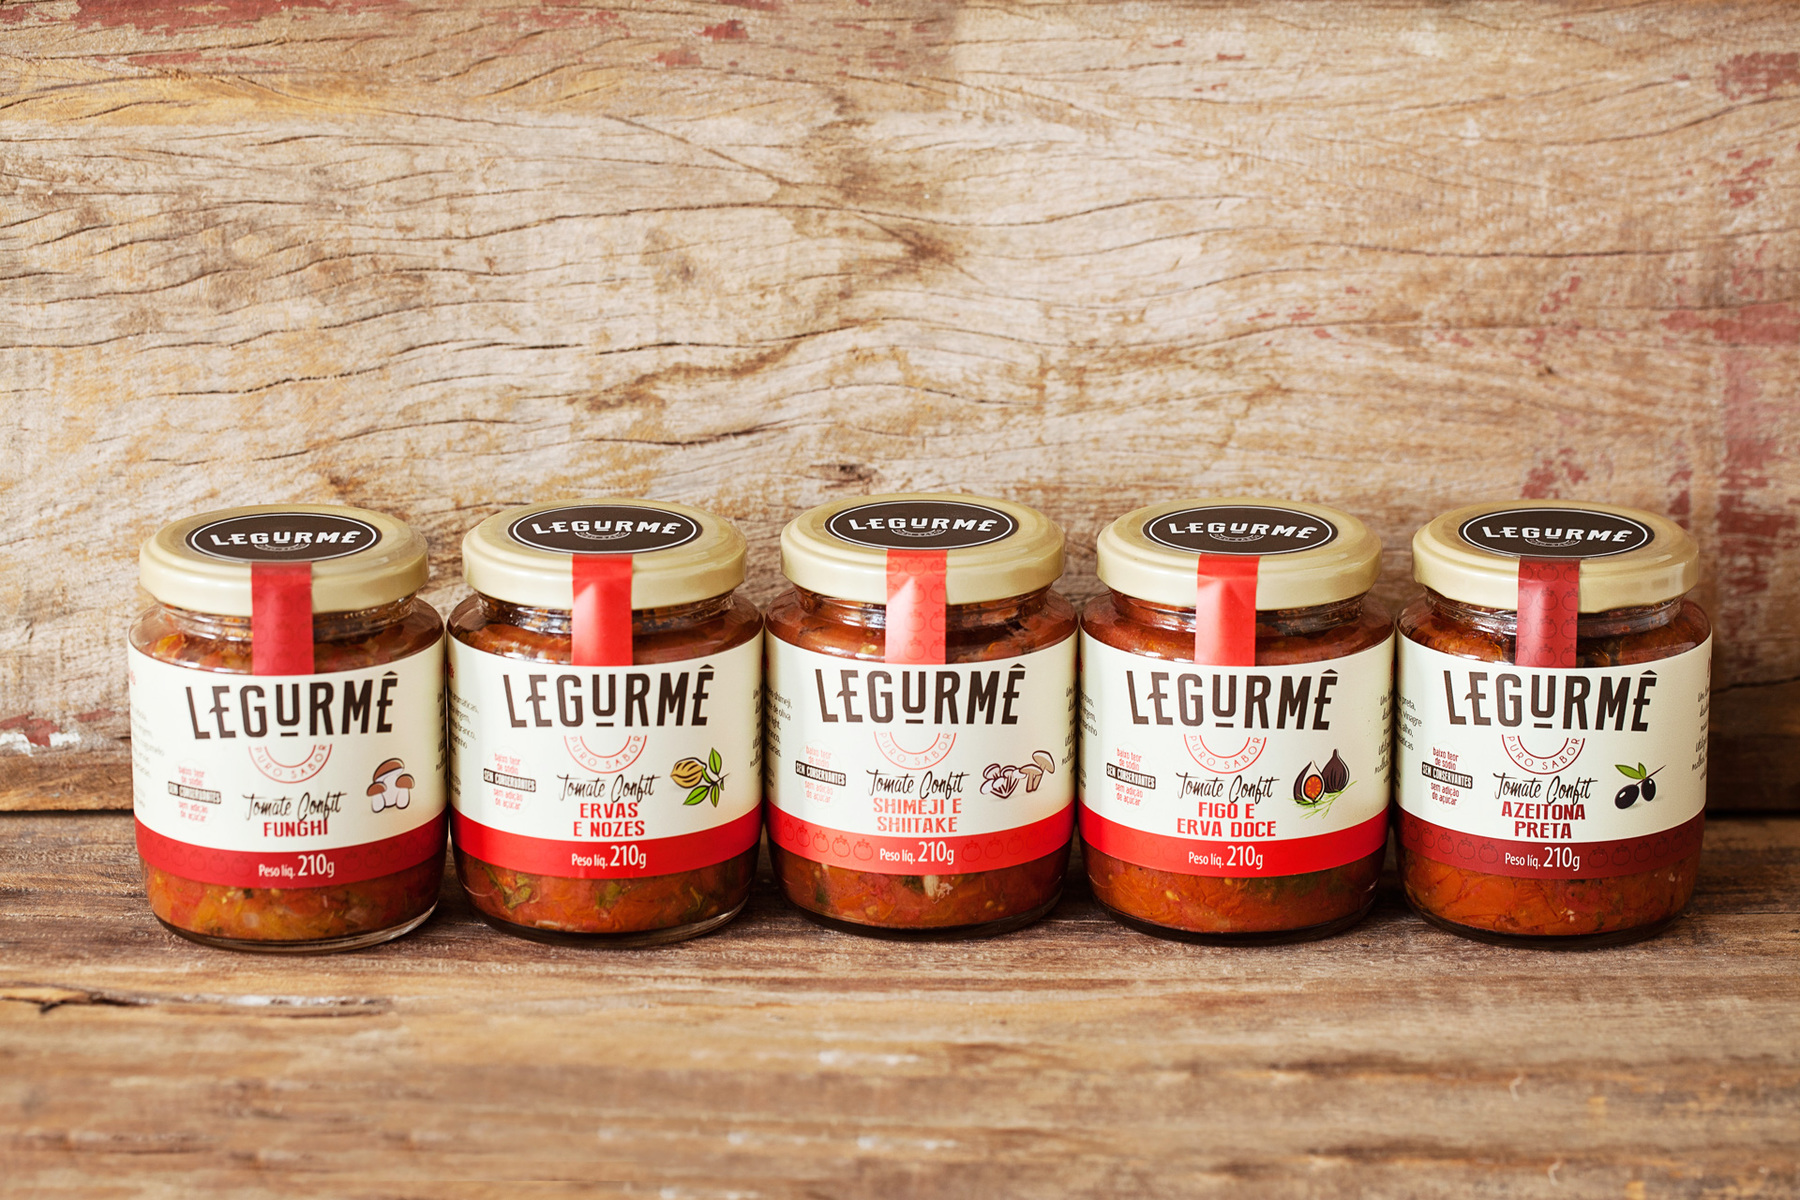 Legurmê by Industria Branding Co